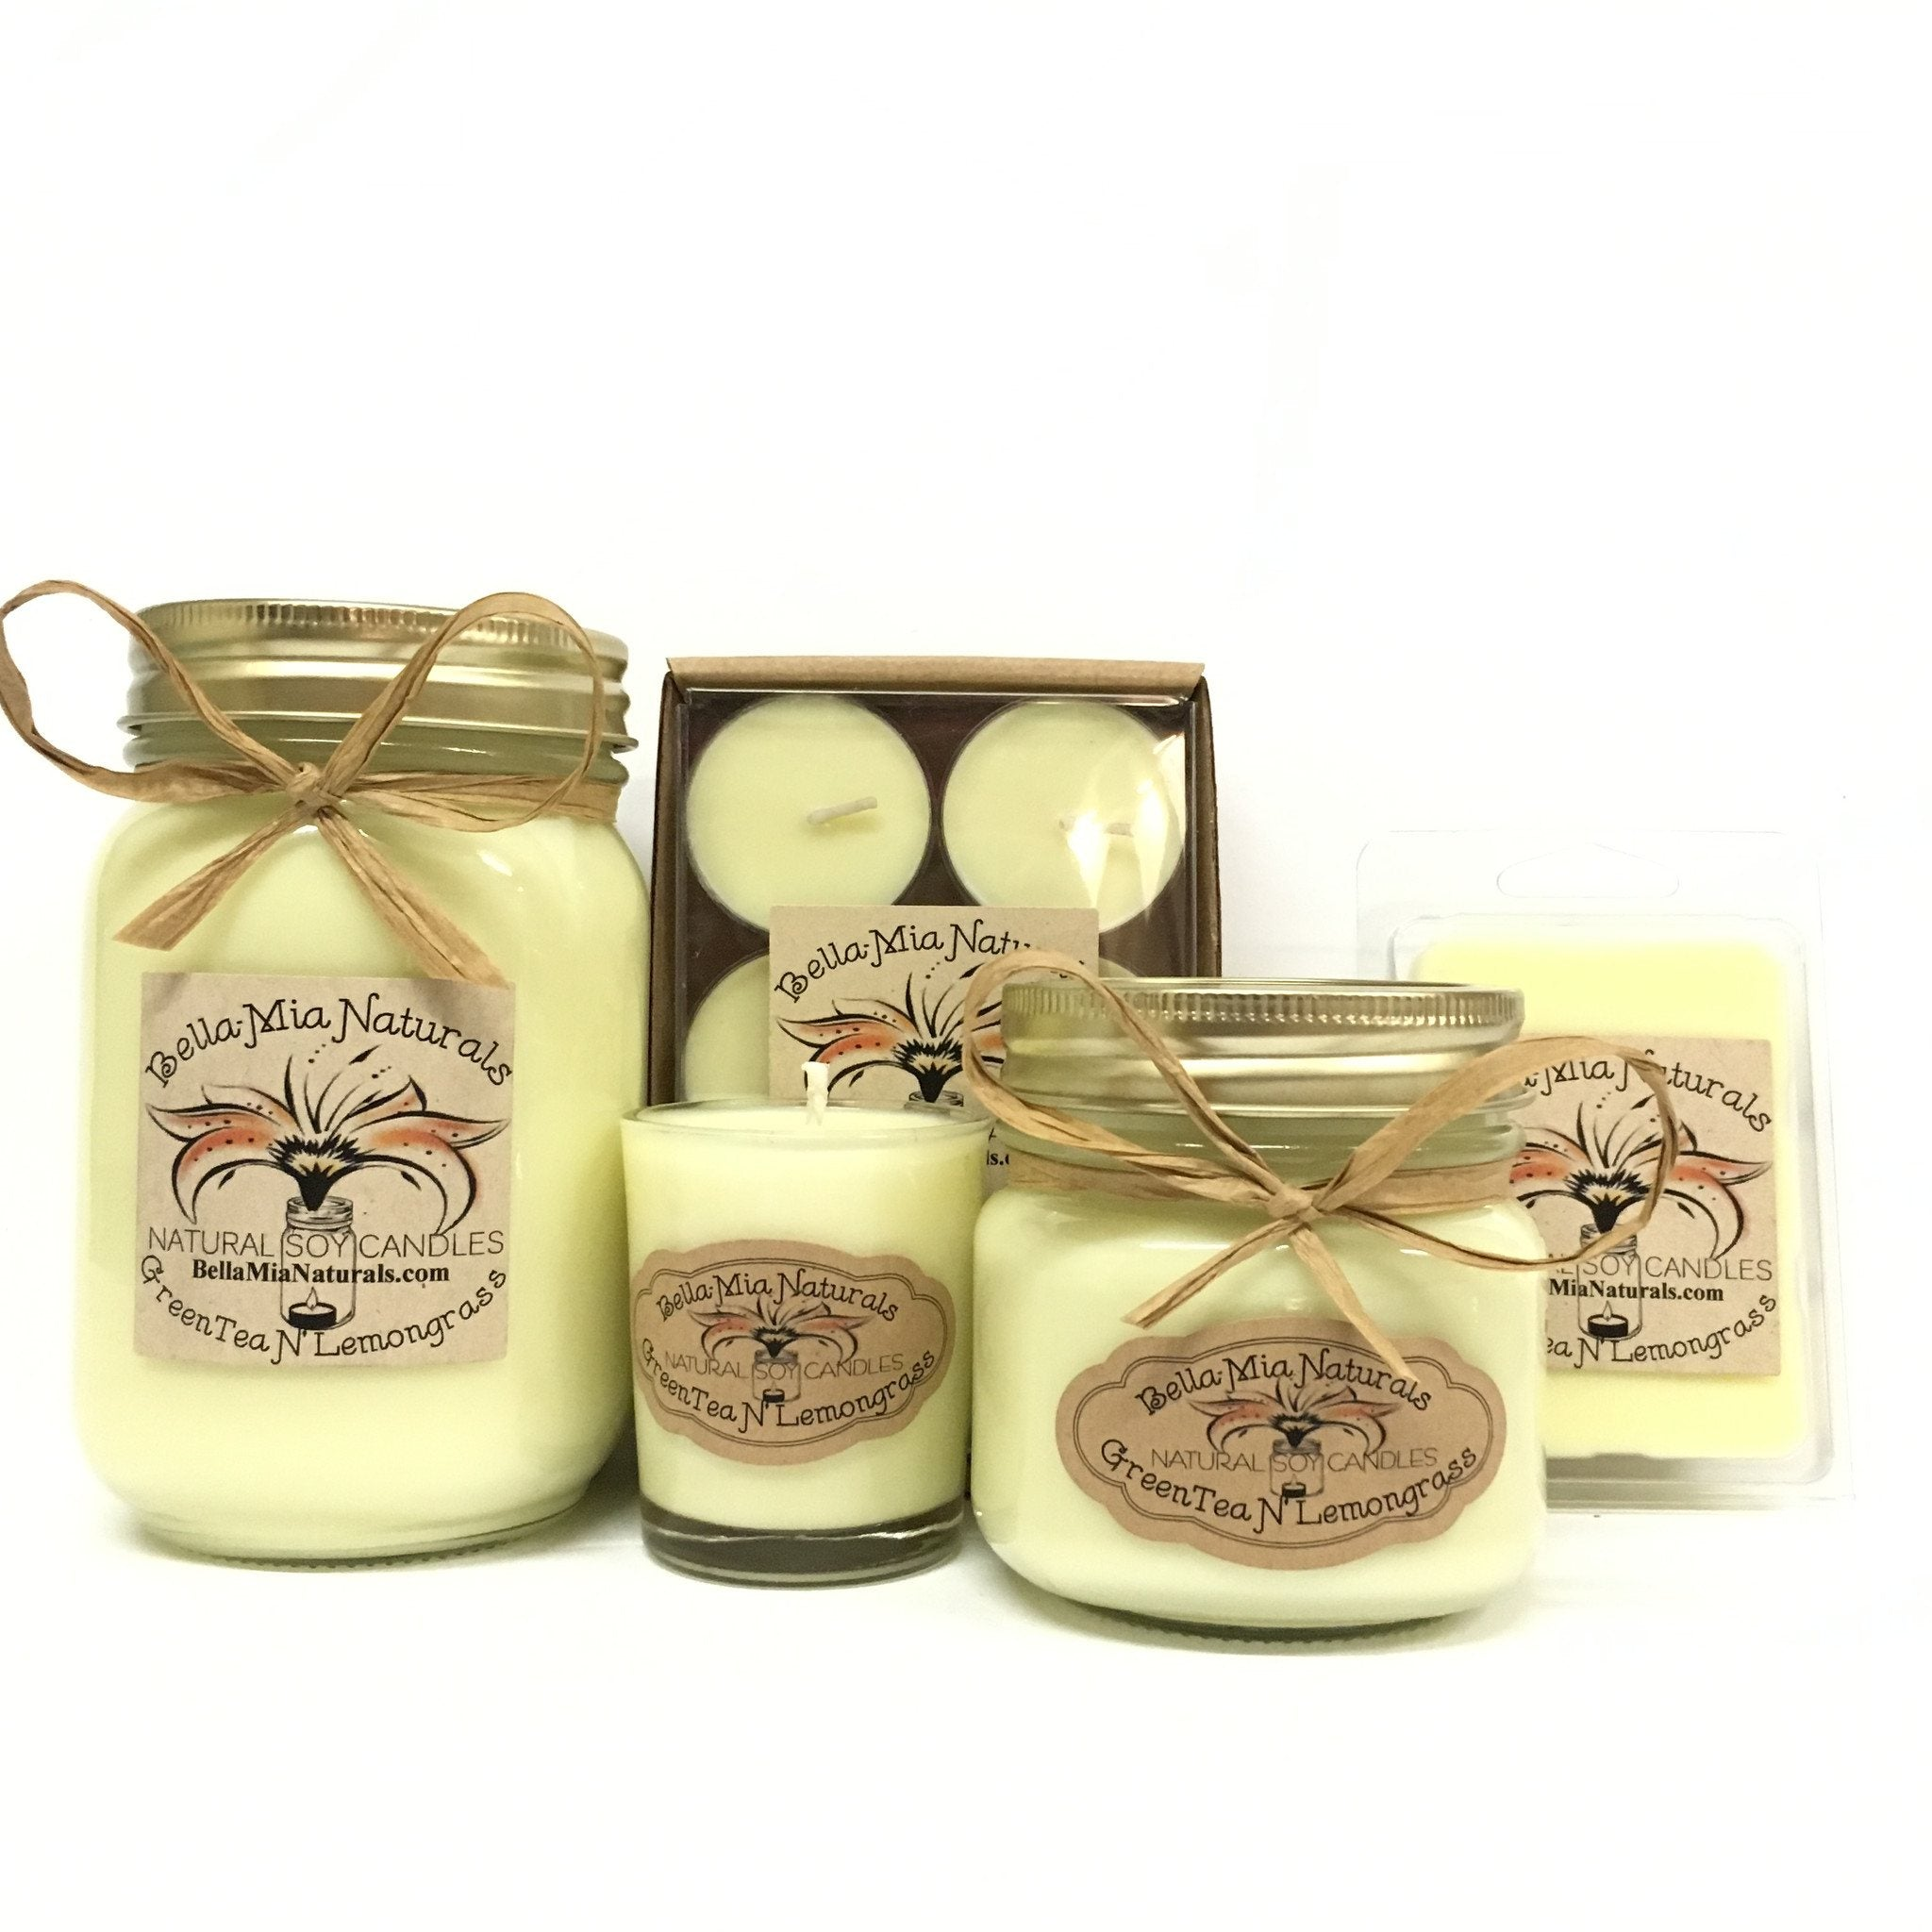 GreenTea N' Lemongrass Natural Hand Poured Soy Candles -  - Bella-Mia Naturals All Natural Soy Candles & Lip Balms - 1